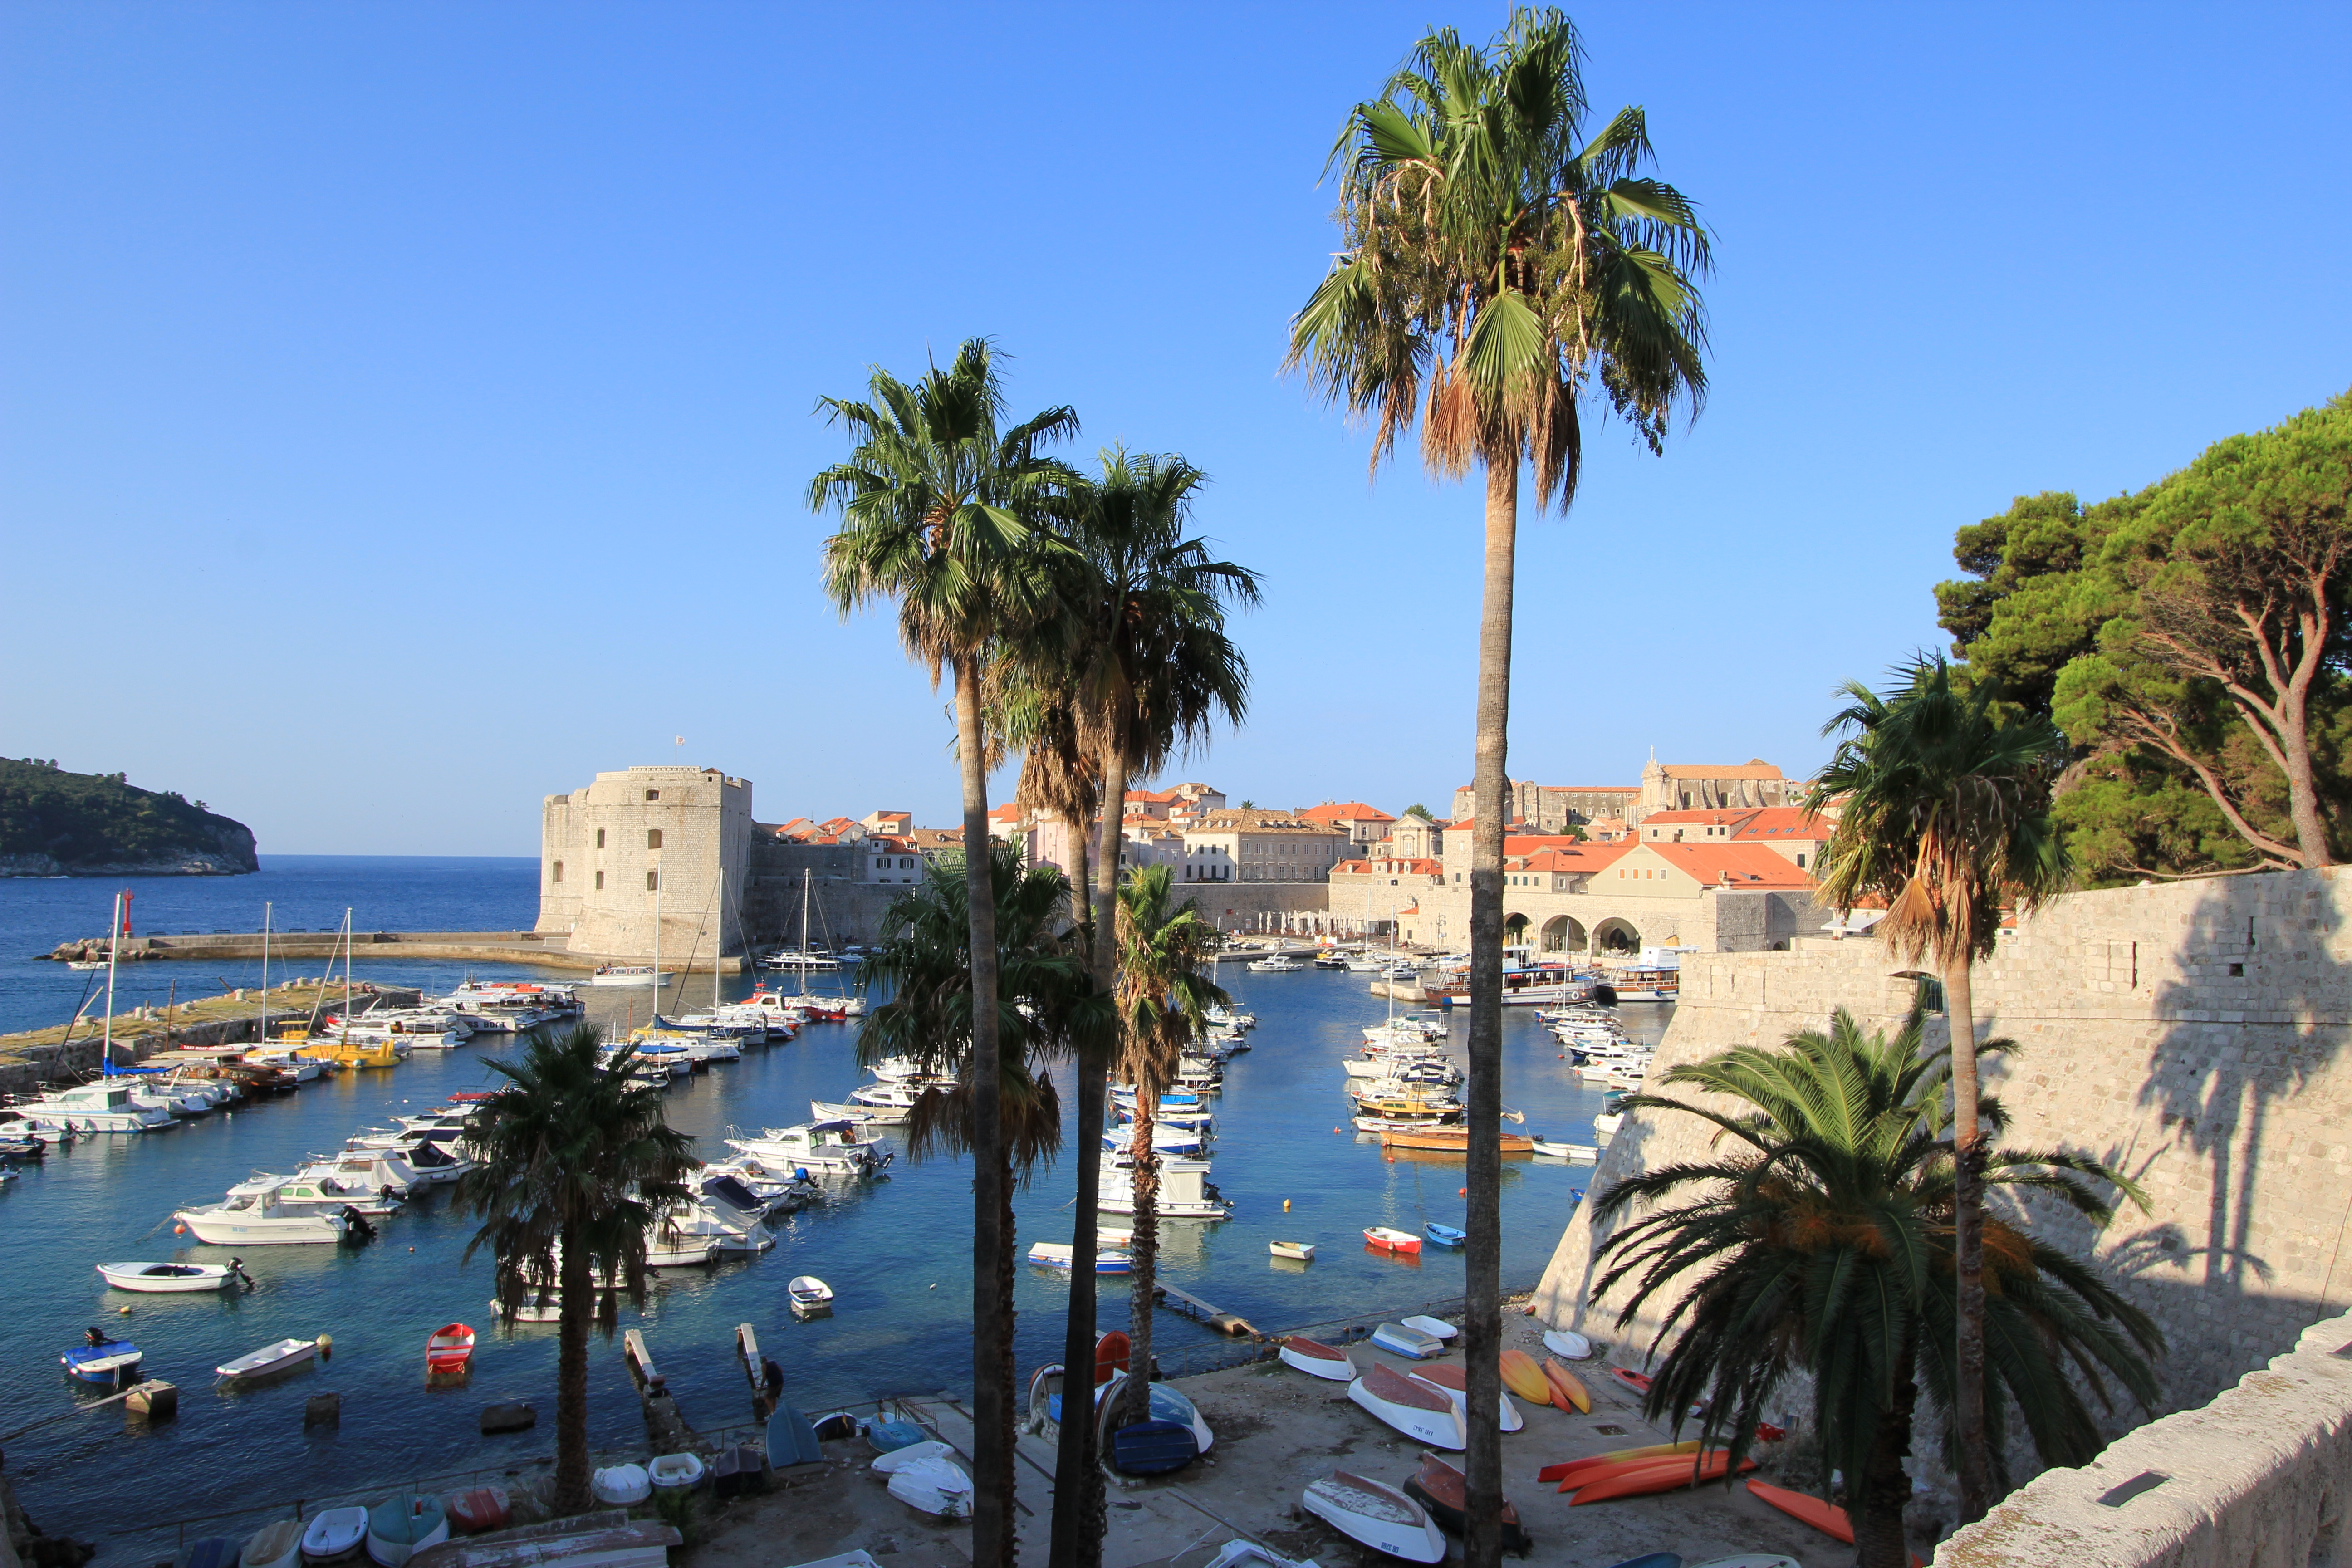 About 07:30 AM in Dubrovnik